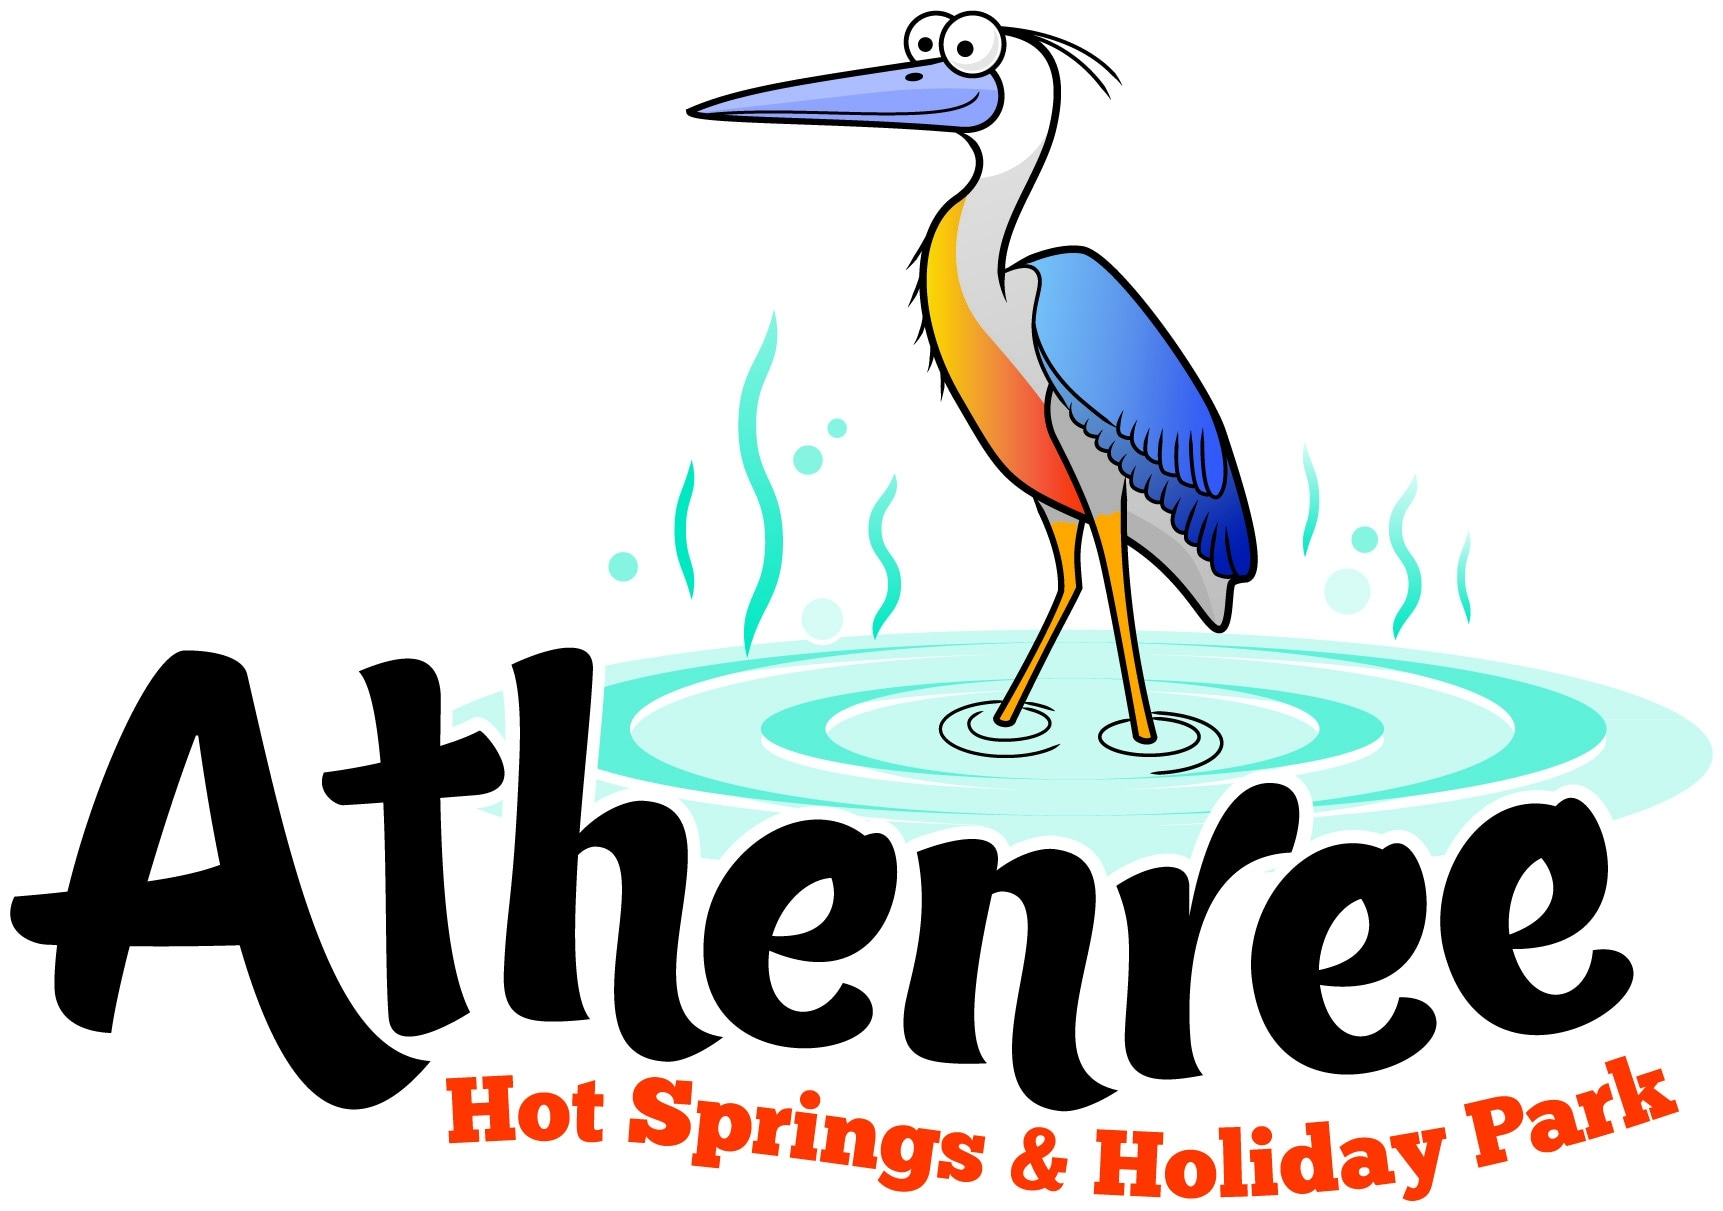 Athenree Hot Springs & Holiday Park